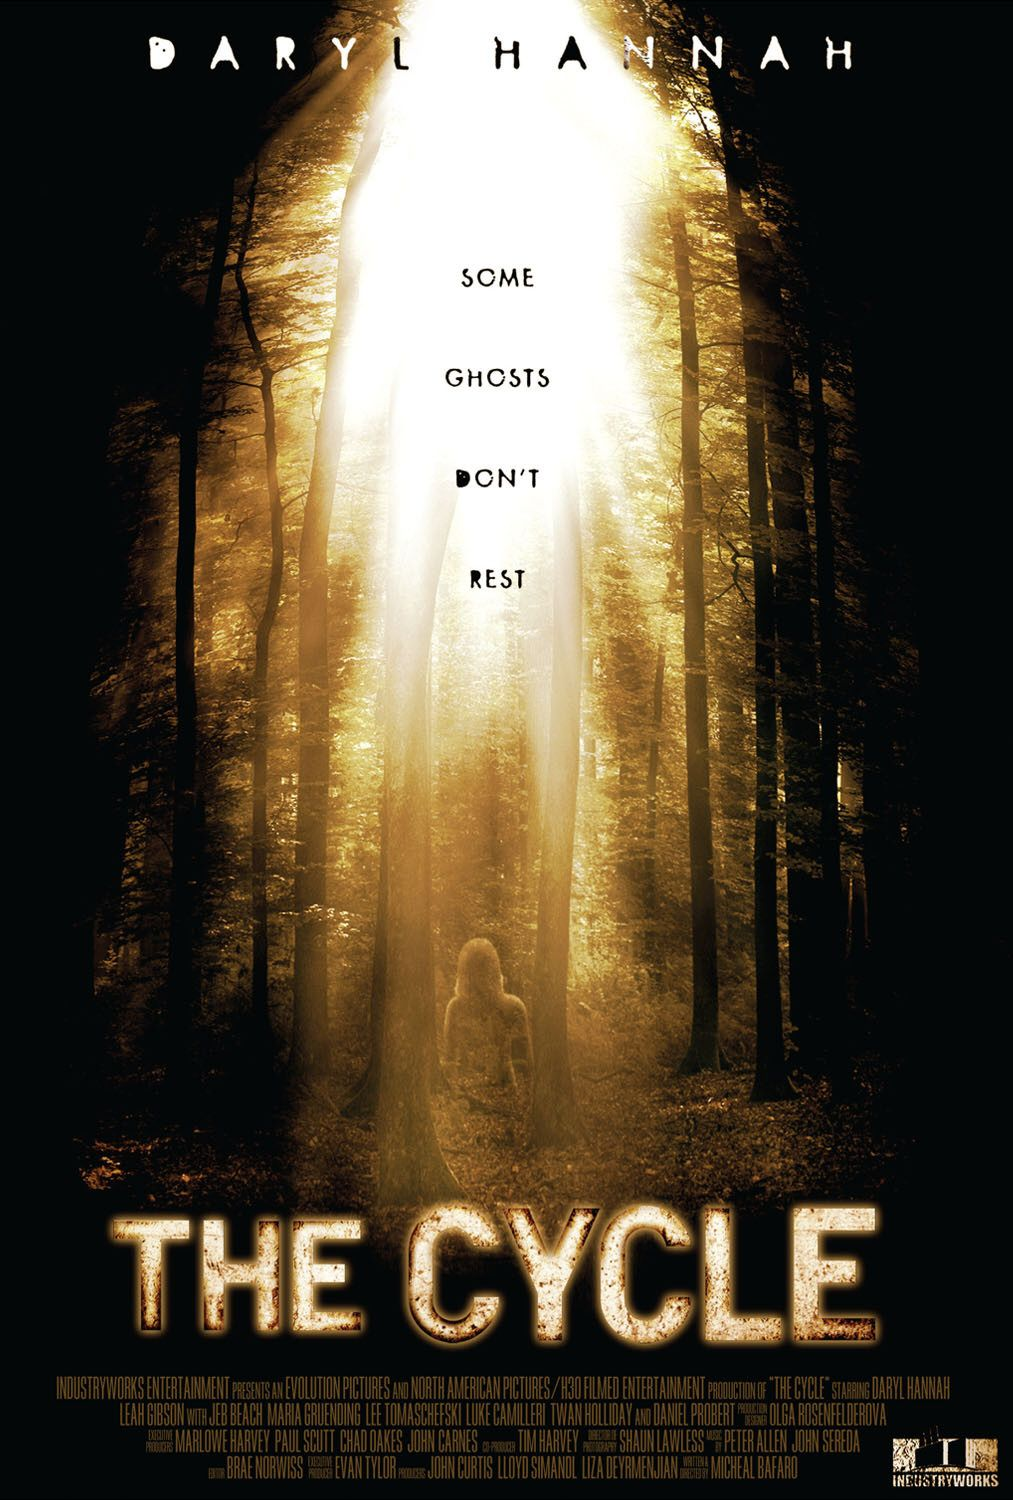 The Cycle: Extra Large Movie Poster Image - Internet Movie Poster ...